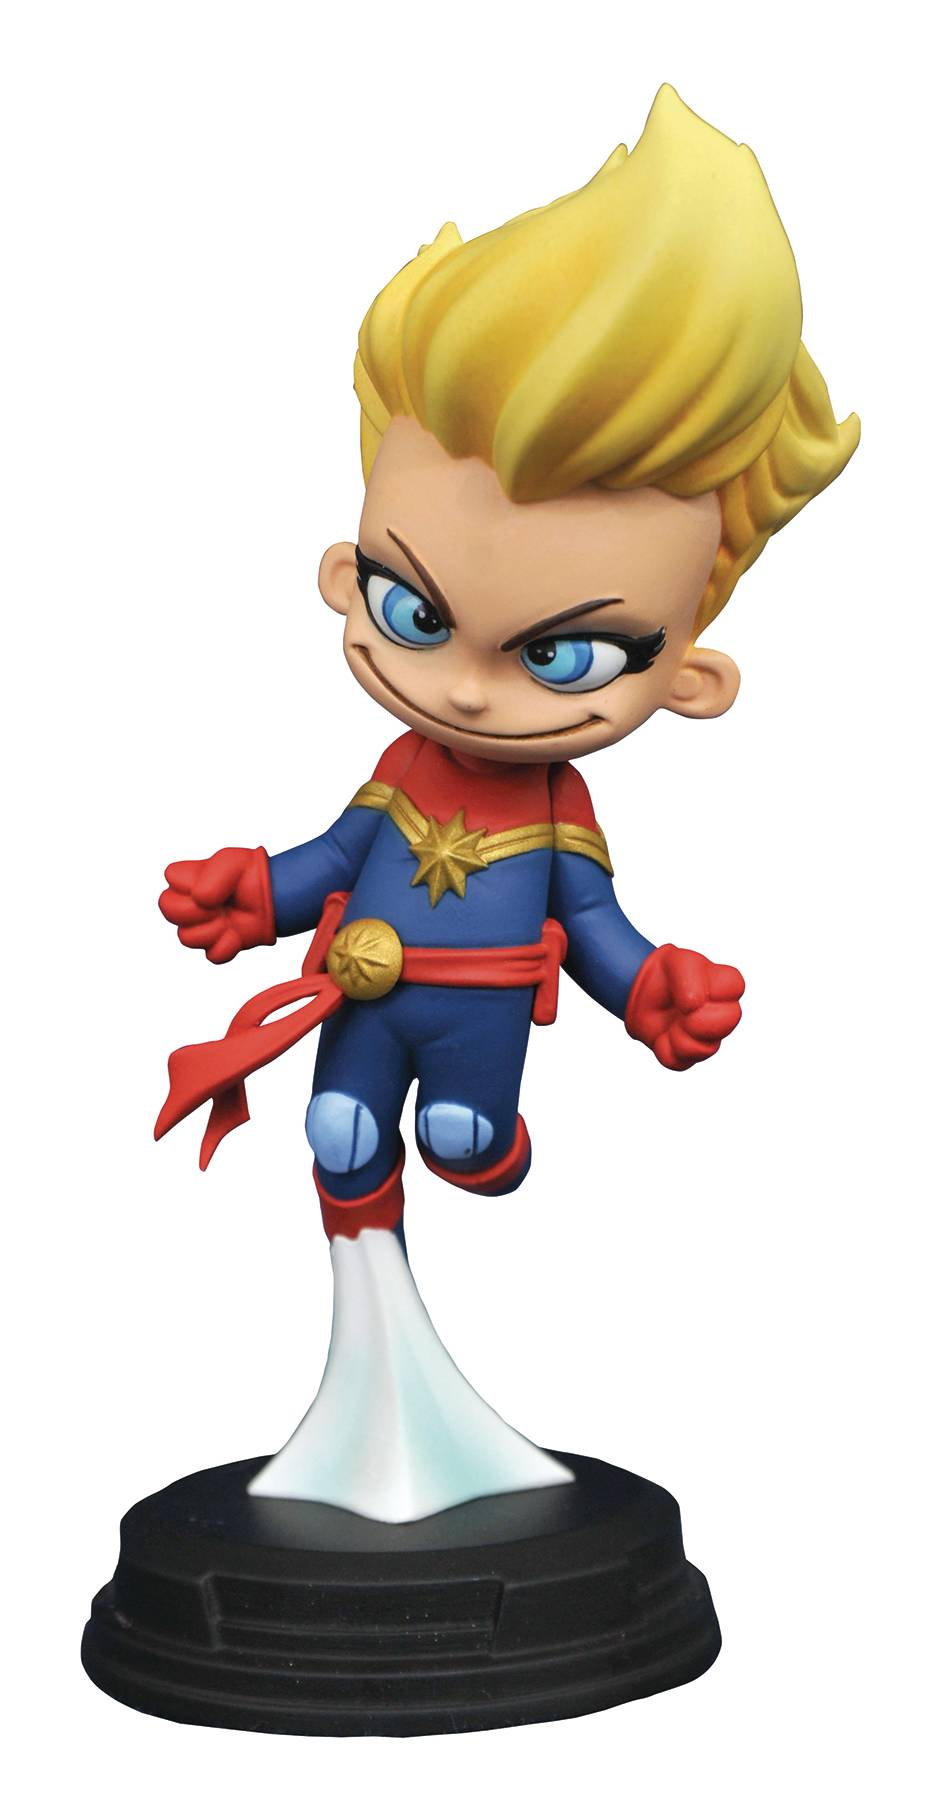 MARVEL ANIMATED CAPTAIN MARVEL STATUE